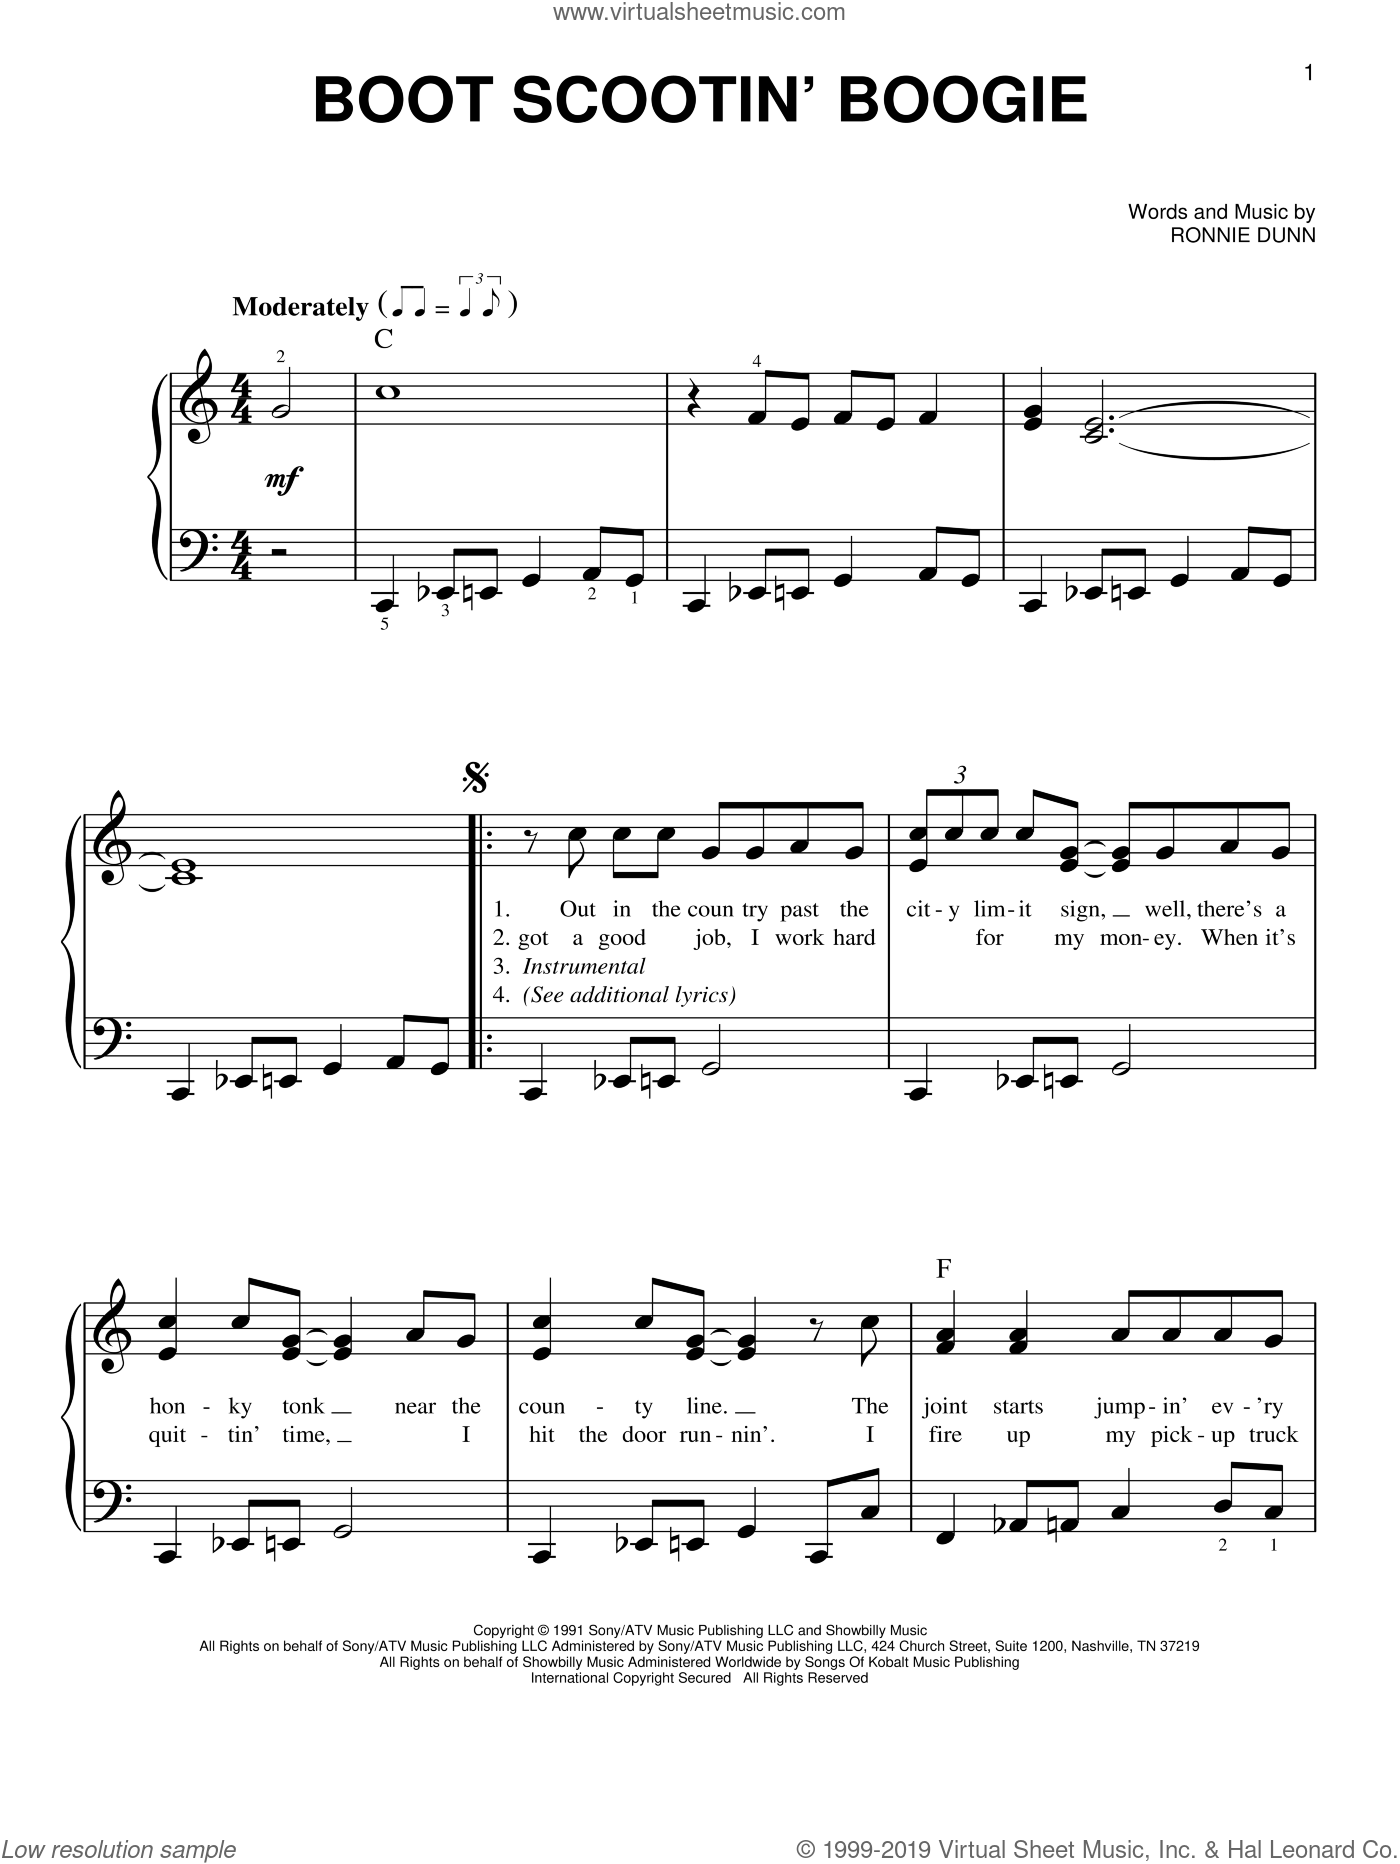 Boot Scootin' Boogie sheet music for piano solo by Ronnie Dunn